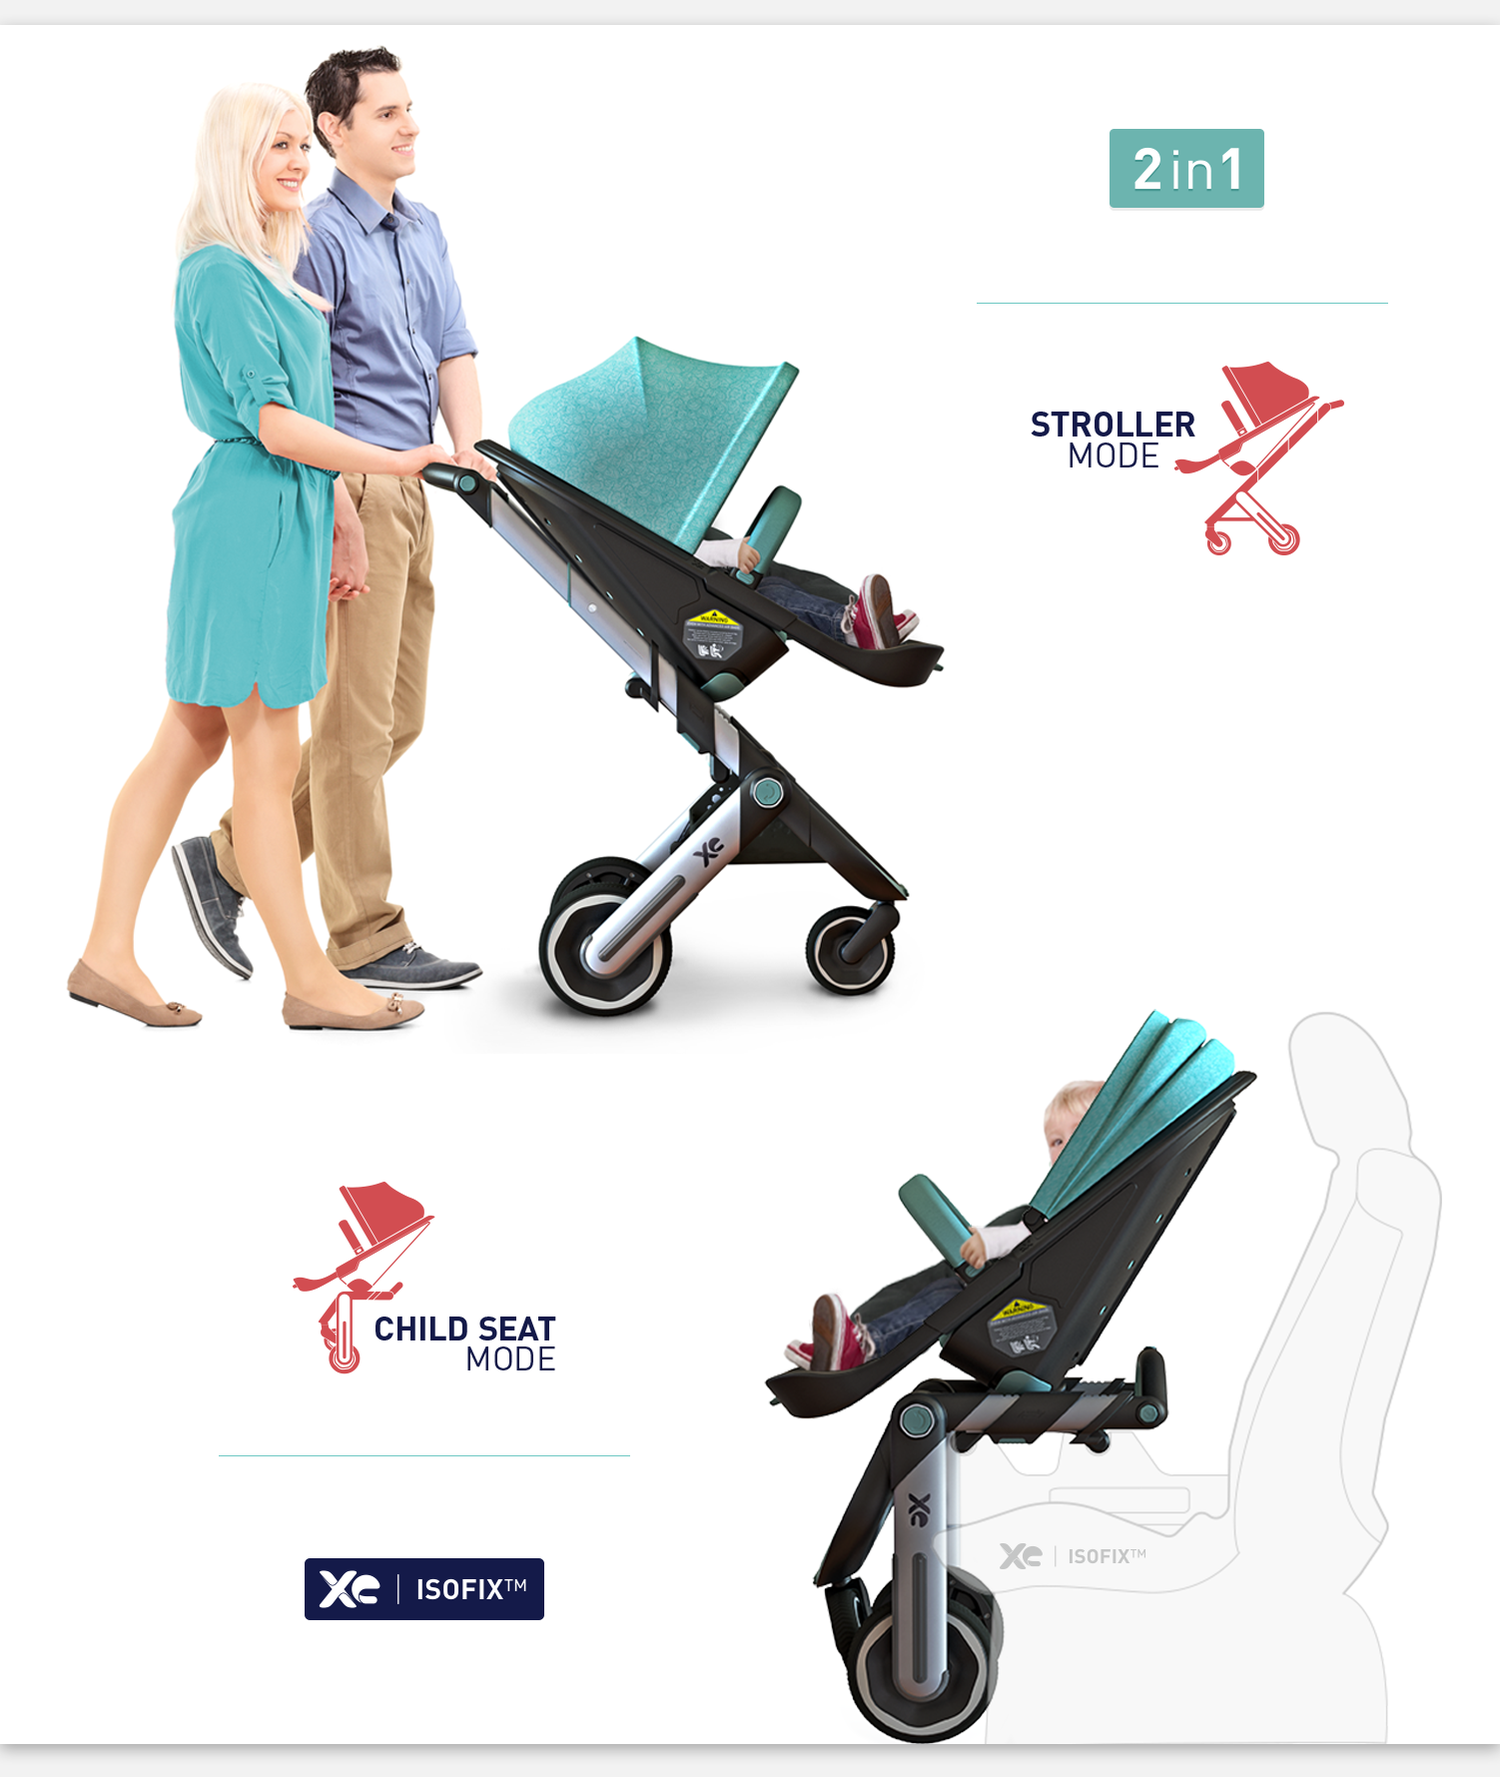 XE / The stroller and child seat - 1 by REMION Design Studio